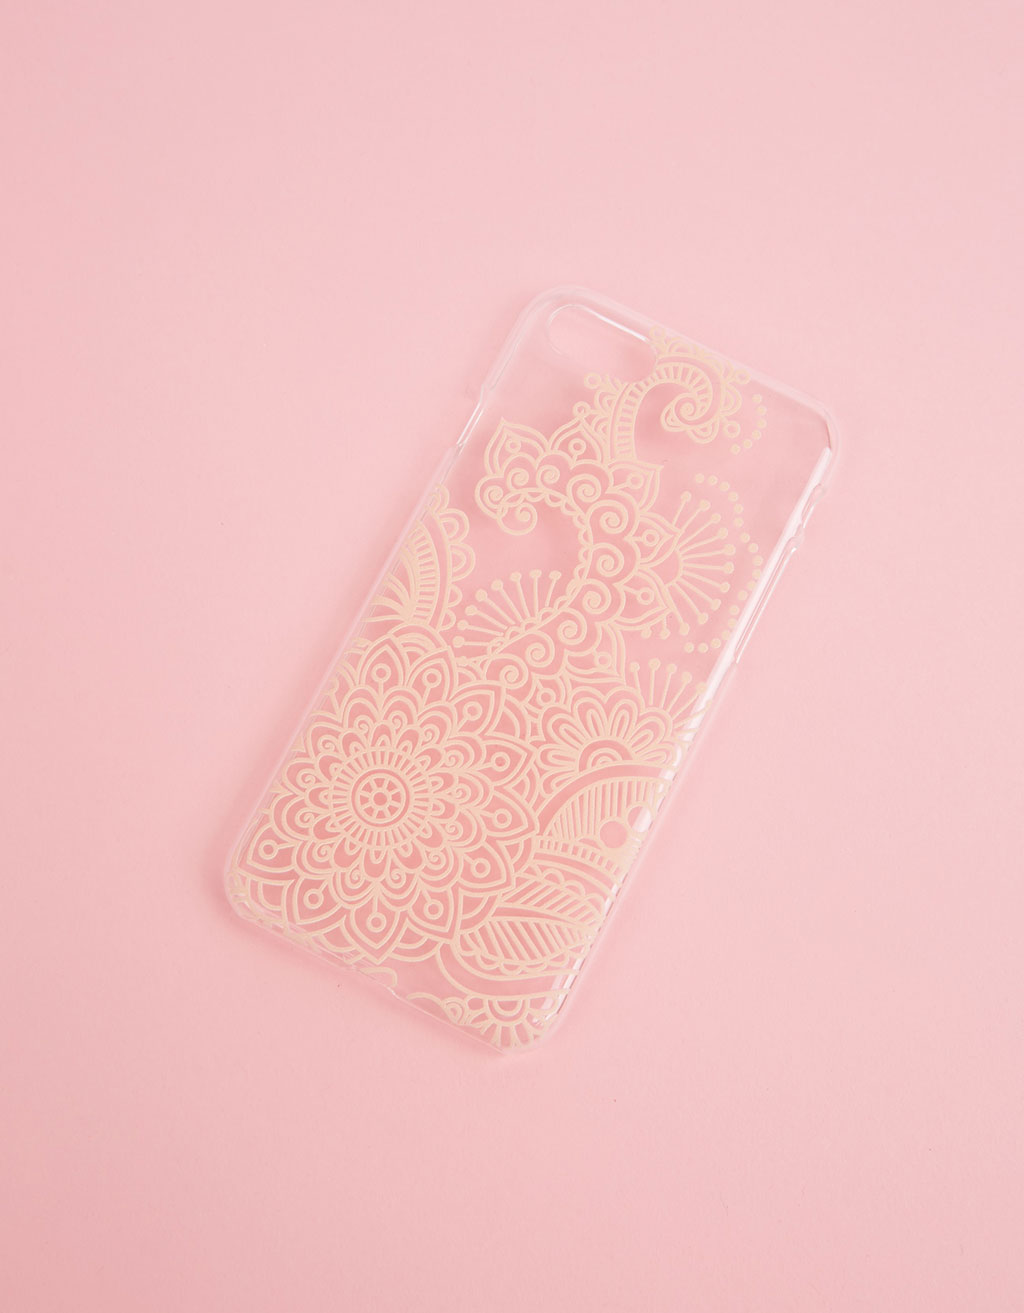 Carcasa tatuaje henna relieve iPhone 7